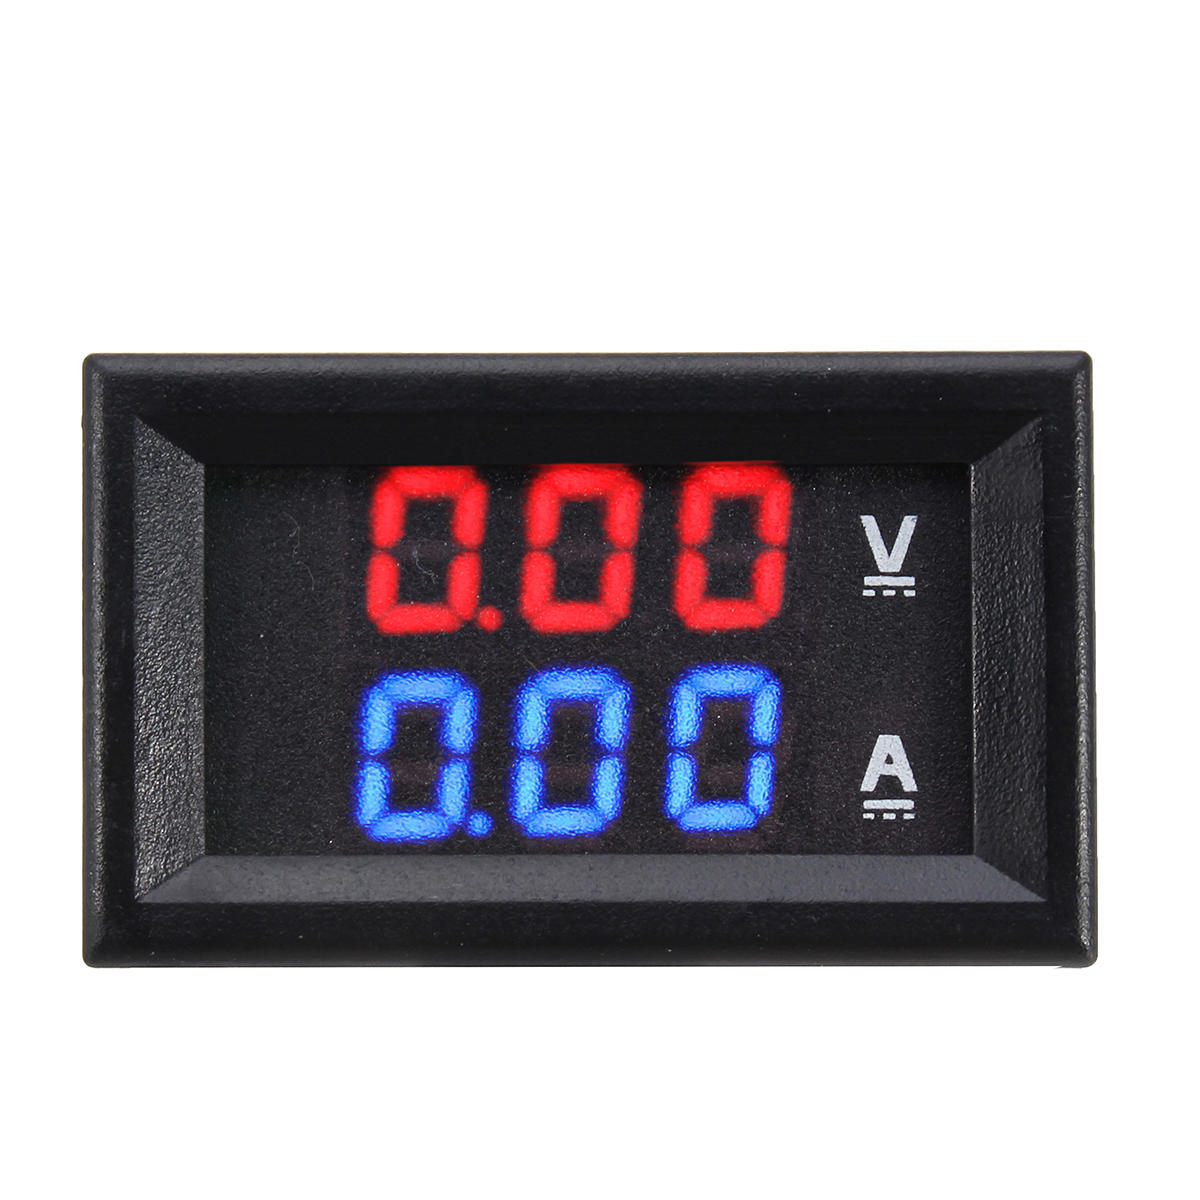 hight resolution of dual red blue led digital voltmeter ammeter panel volt gauge meter cod